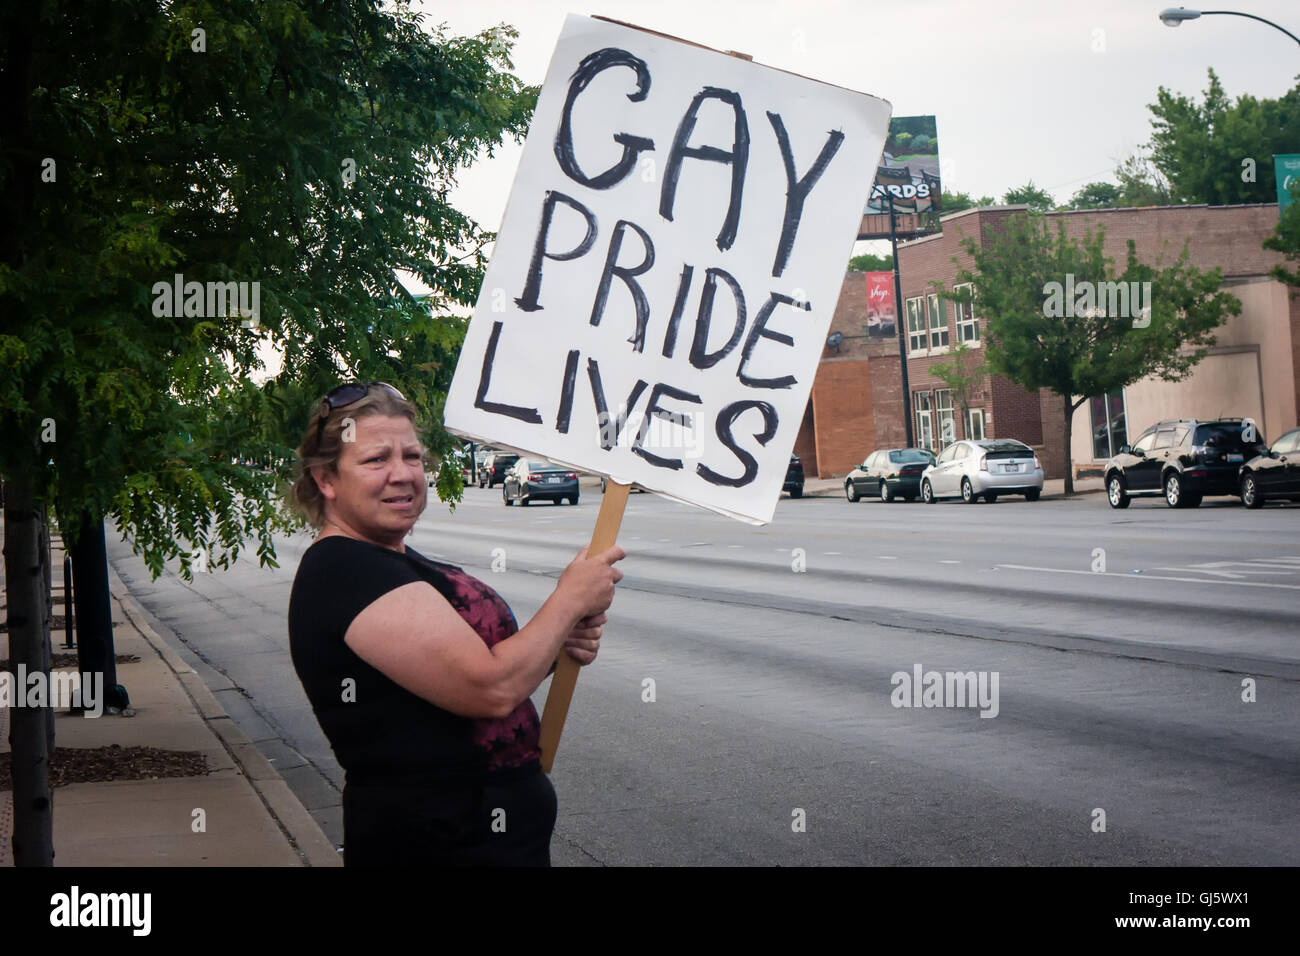 from Maison gay vigil honor